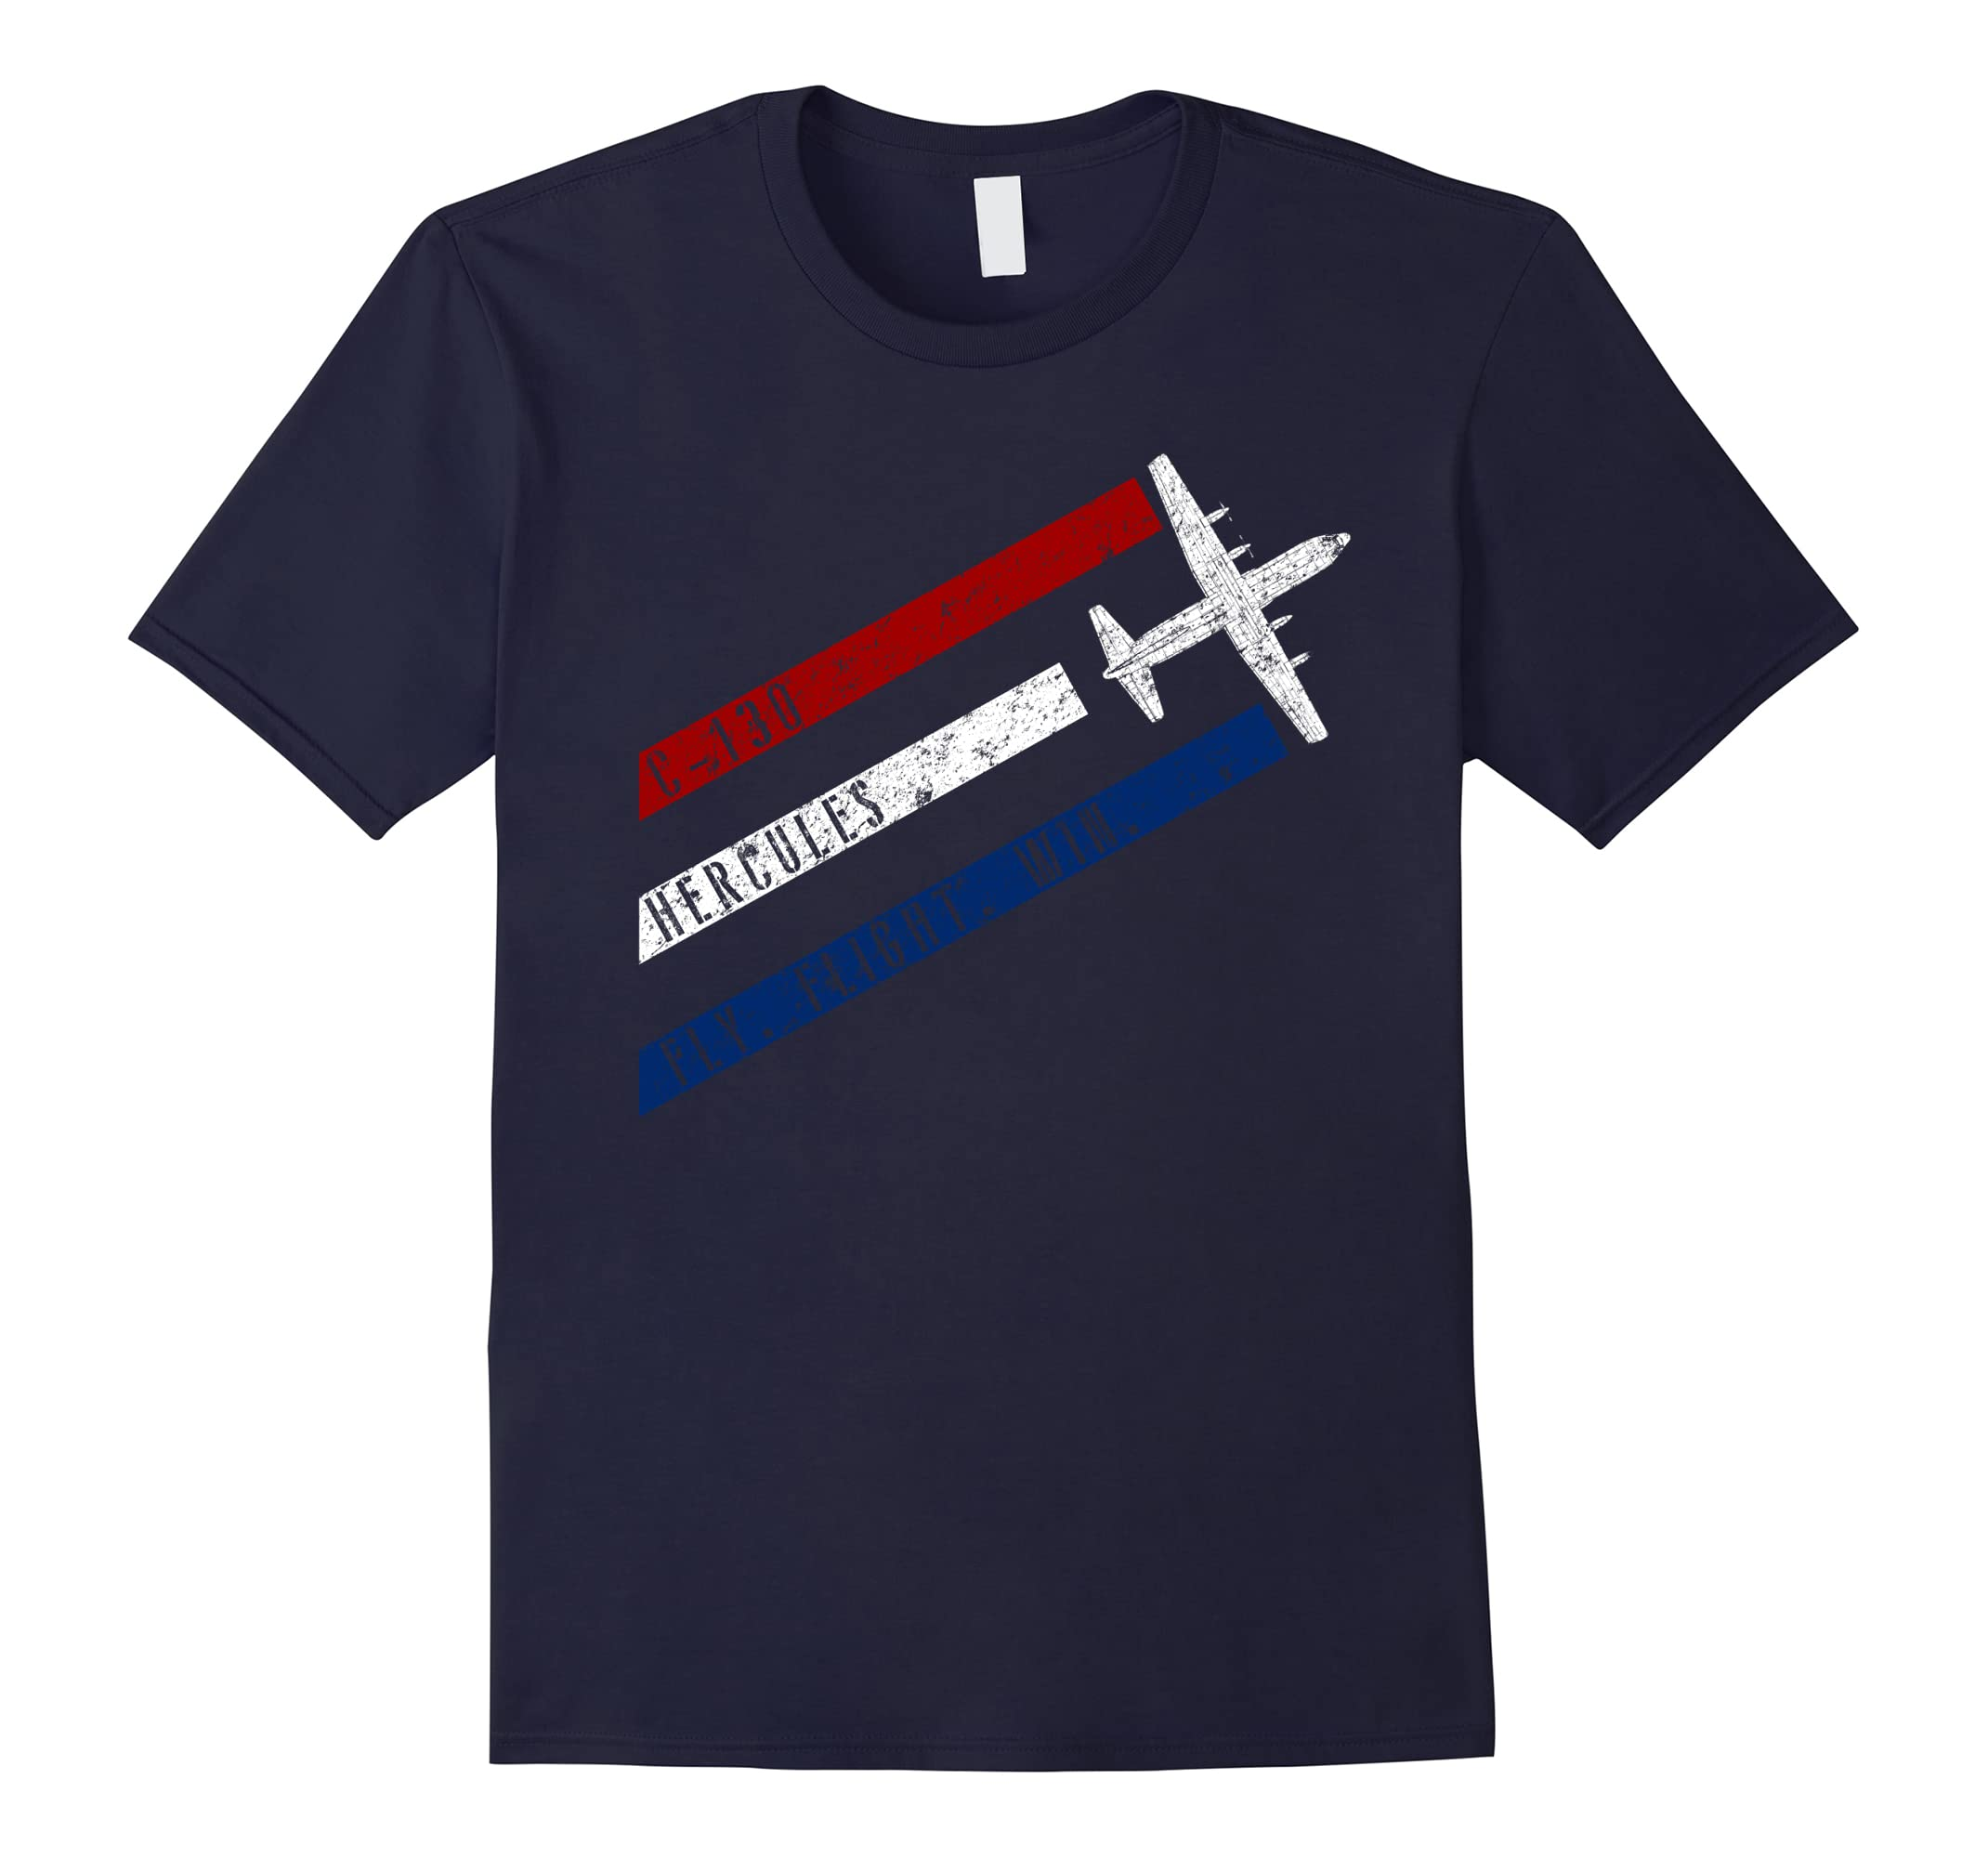 C-130 Hercules Fly. Fight. Win. Patriotic Airplane T-Shirt-ah my shirt one gift